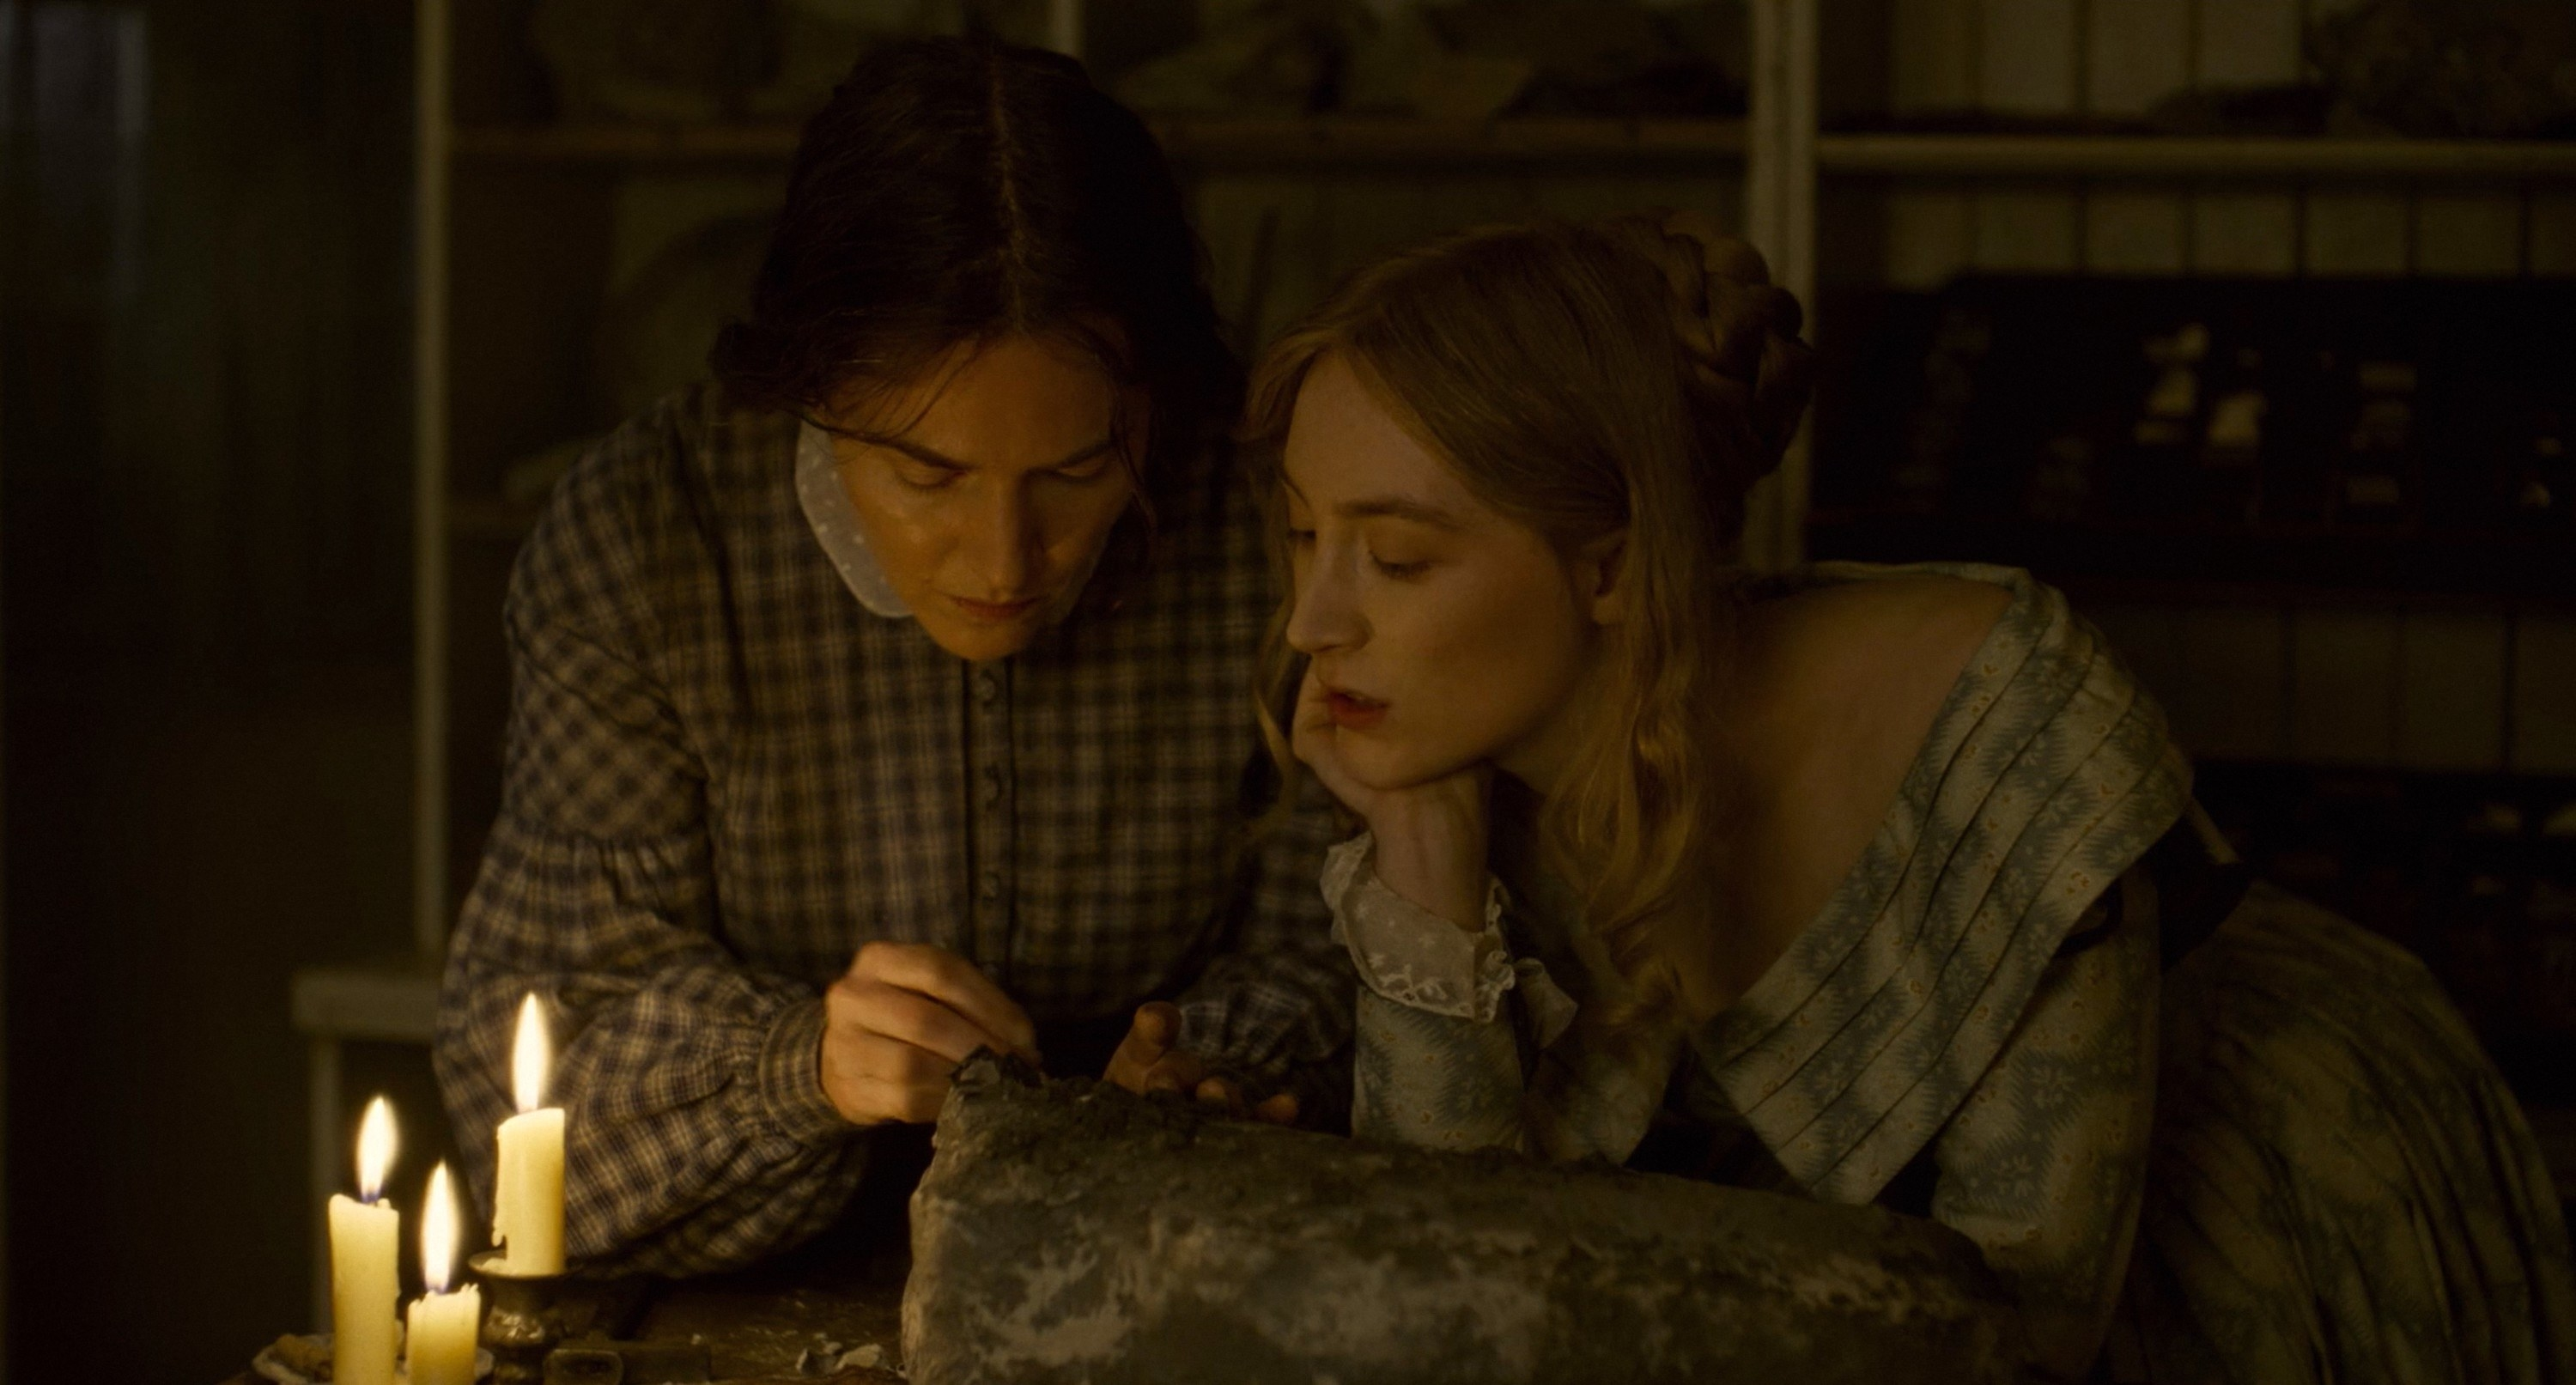 Kate Winslet and Saoirse Ronan looking at a fossil